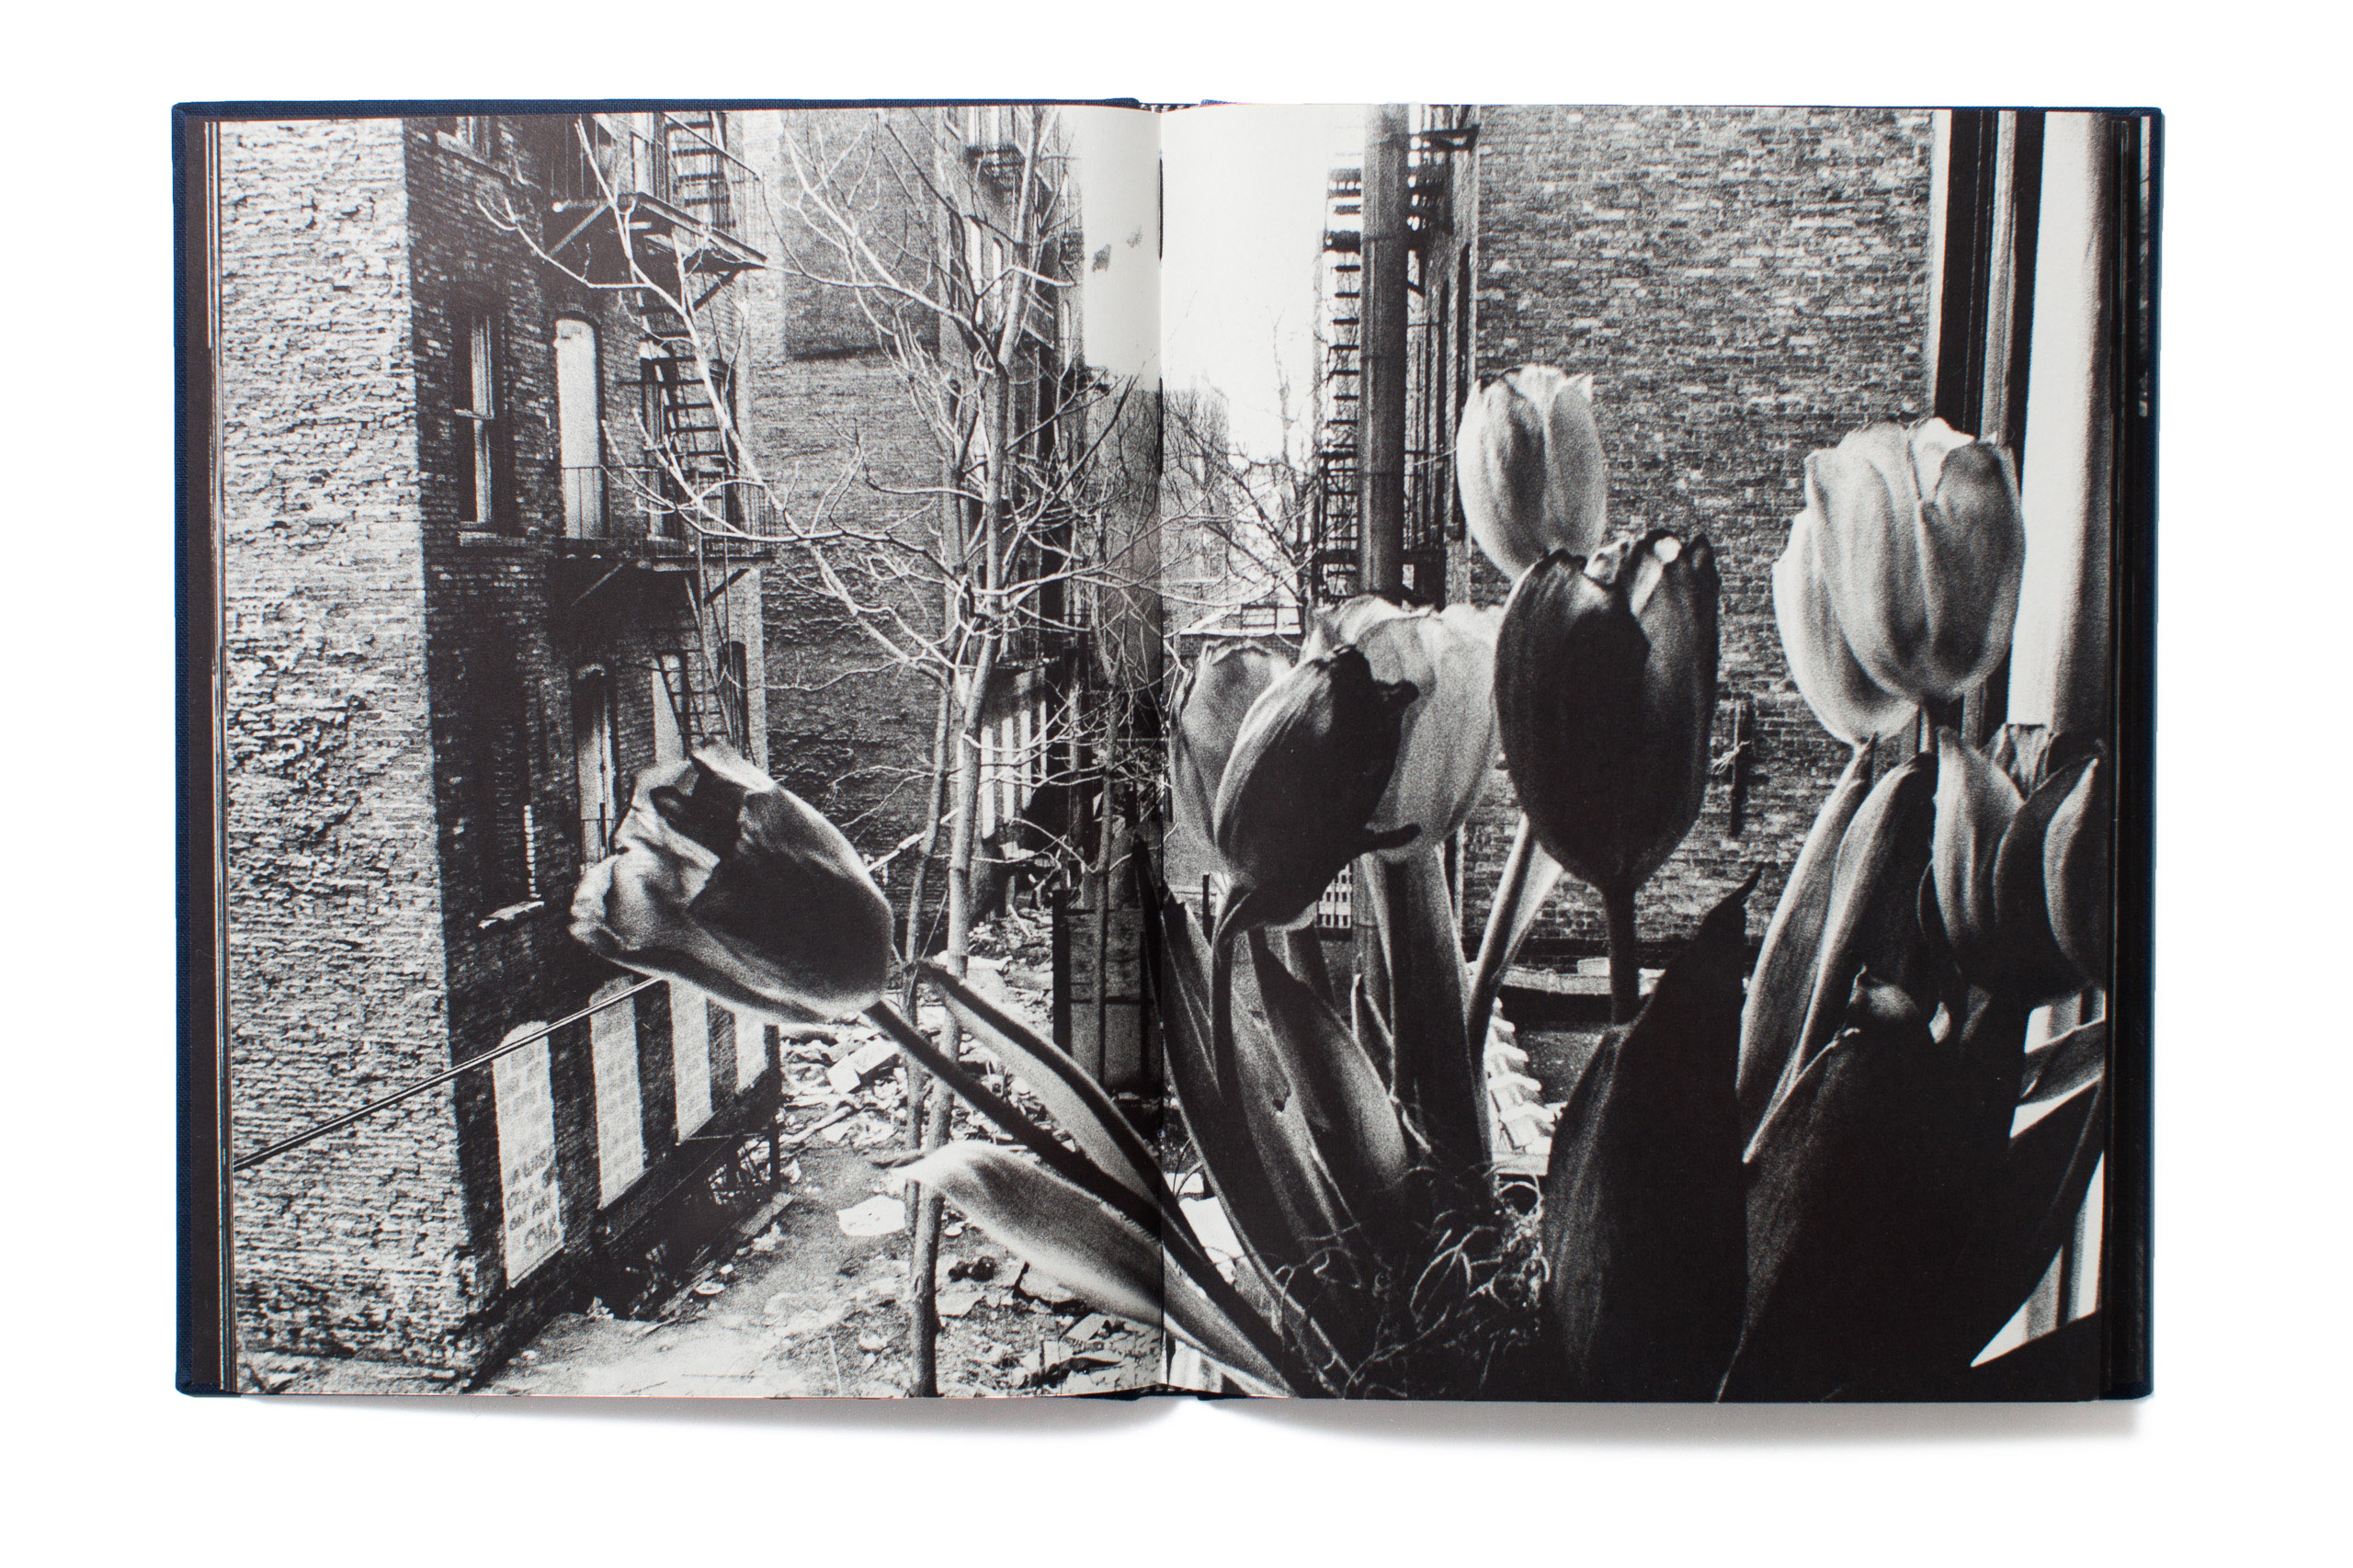 """""""The reissue of <i>Invisible City</i> is rich in texture and is every bit as intoxicating as that first visit to Schles' East Village in New York City in the eighties. """"-Michelle Molloy, International Photo Editor, <i>TIME</i>."""